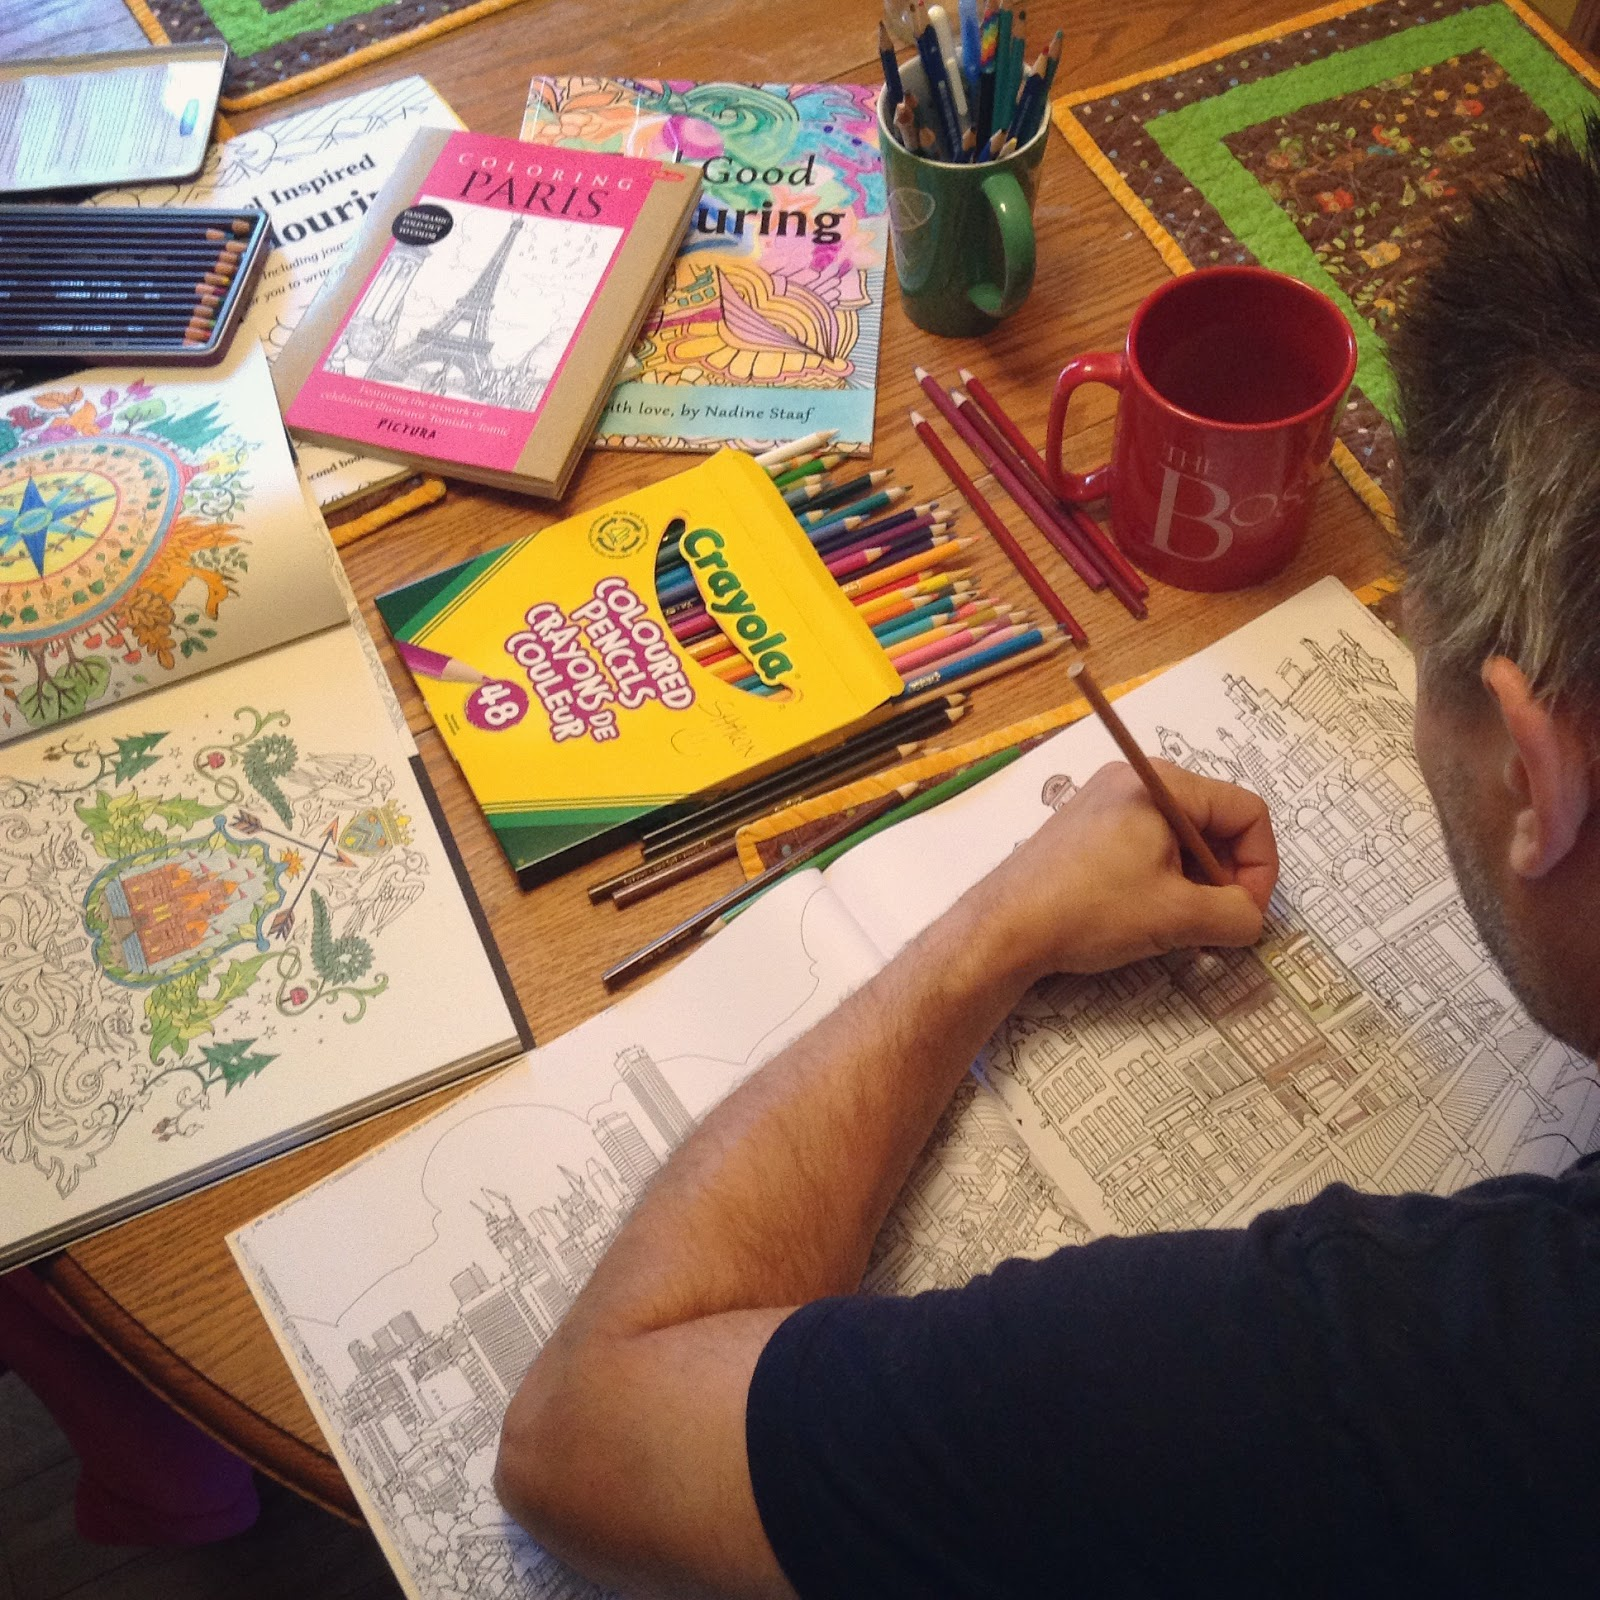 My Husband Enjoying Colouring In The Amsterdam Page